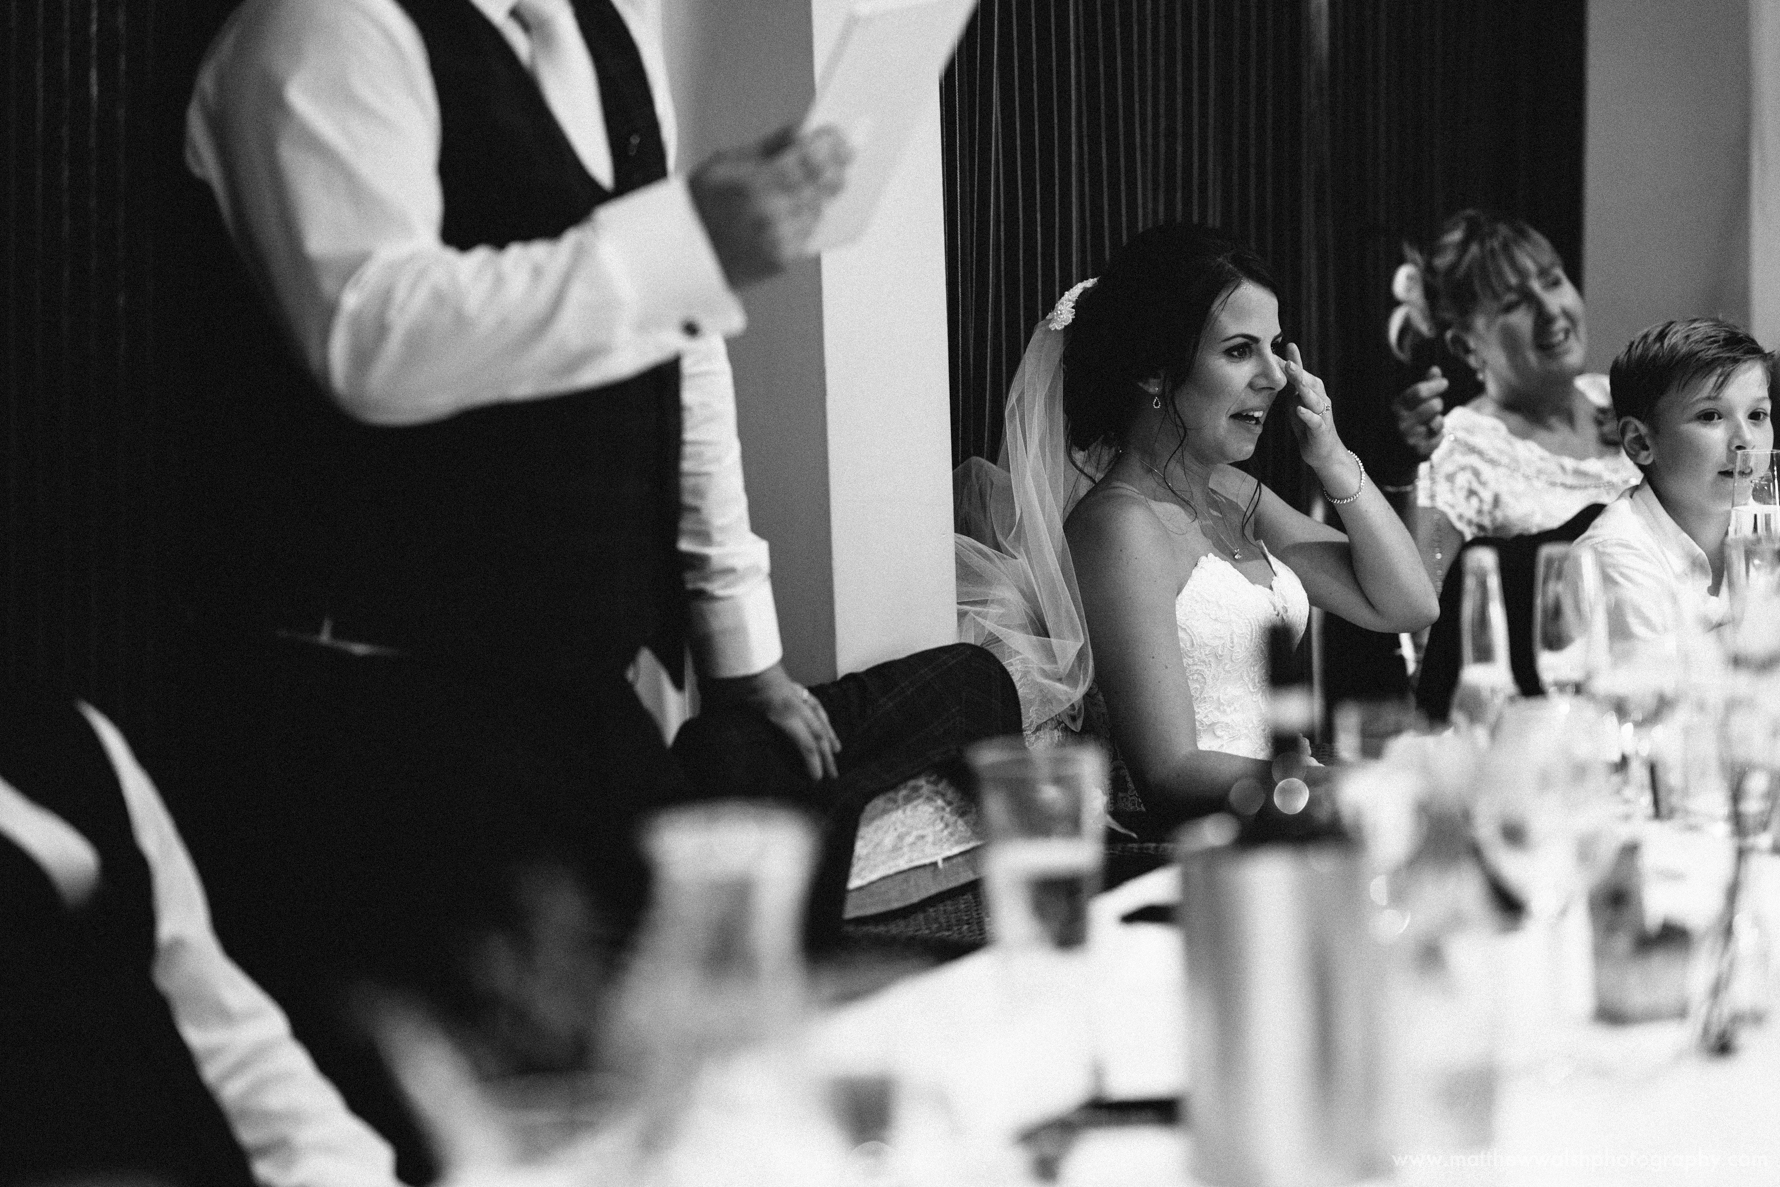 A hilarious moment makes the bride shed a tear